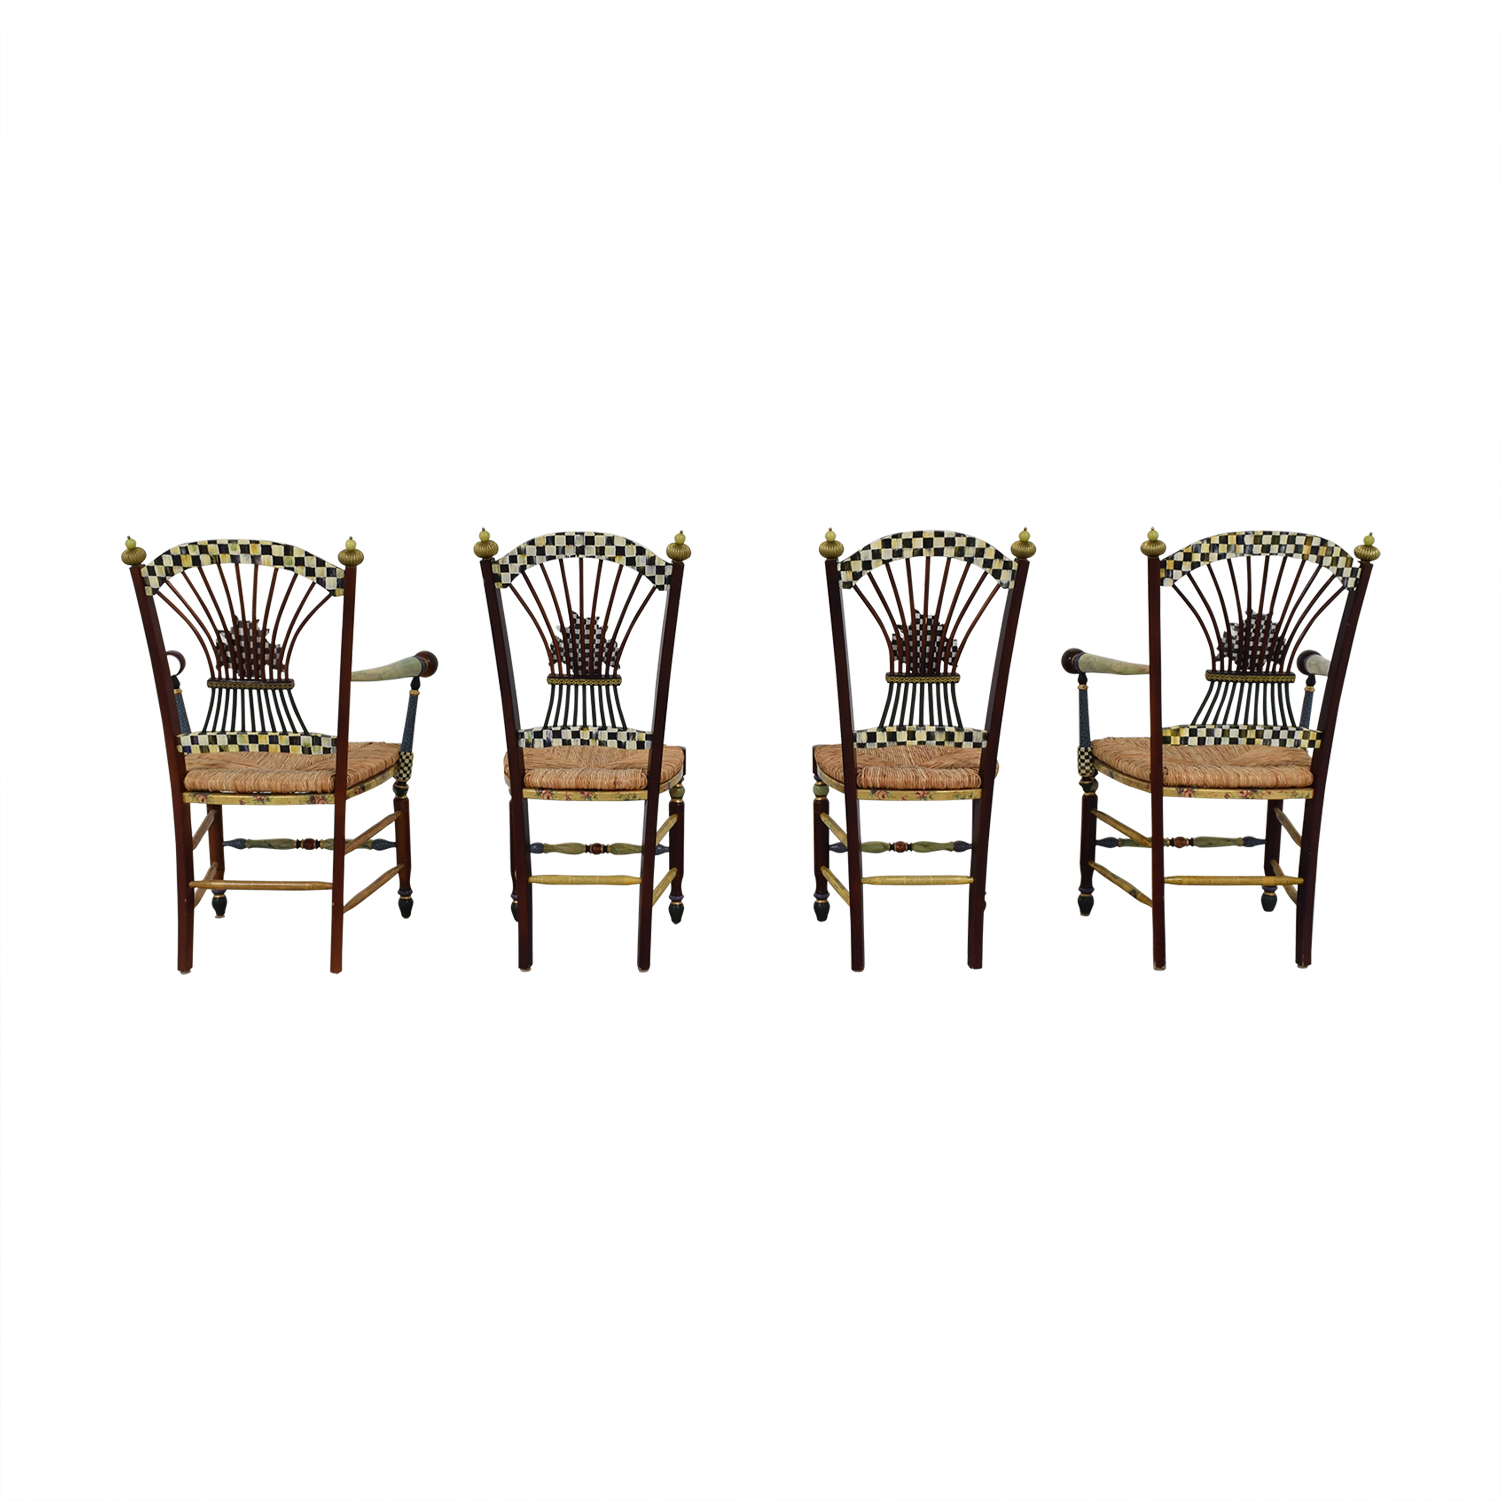 buy MacKenzie-Childs Multi-Colored Wicker Dining Chairs MacKenzie-Childs Accent Chairs